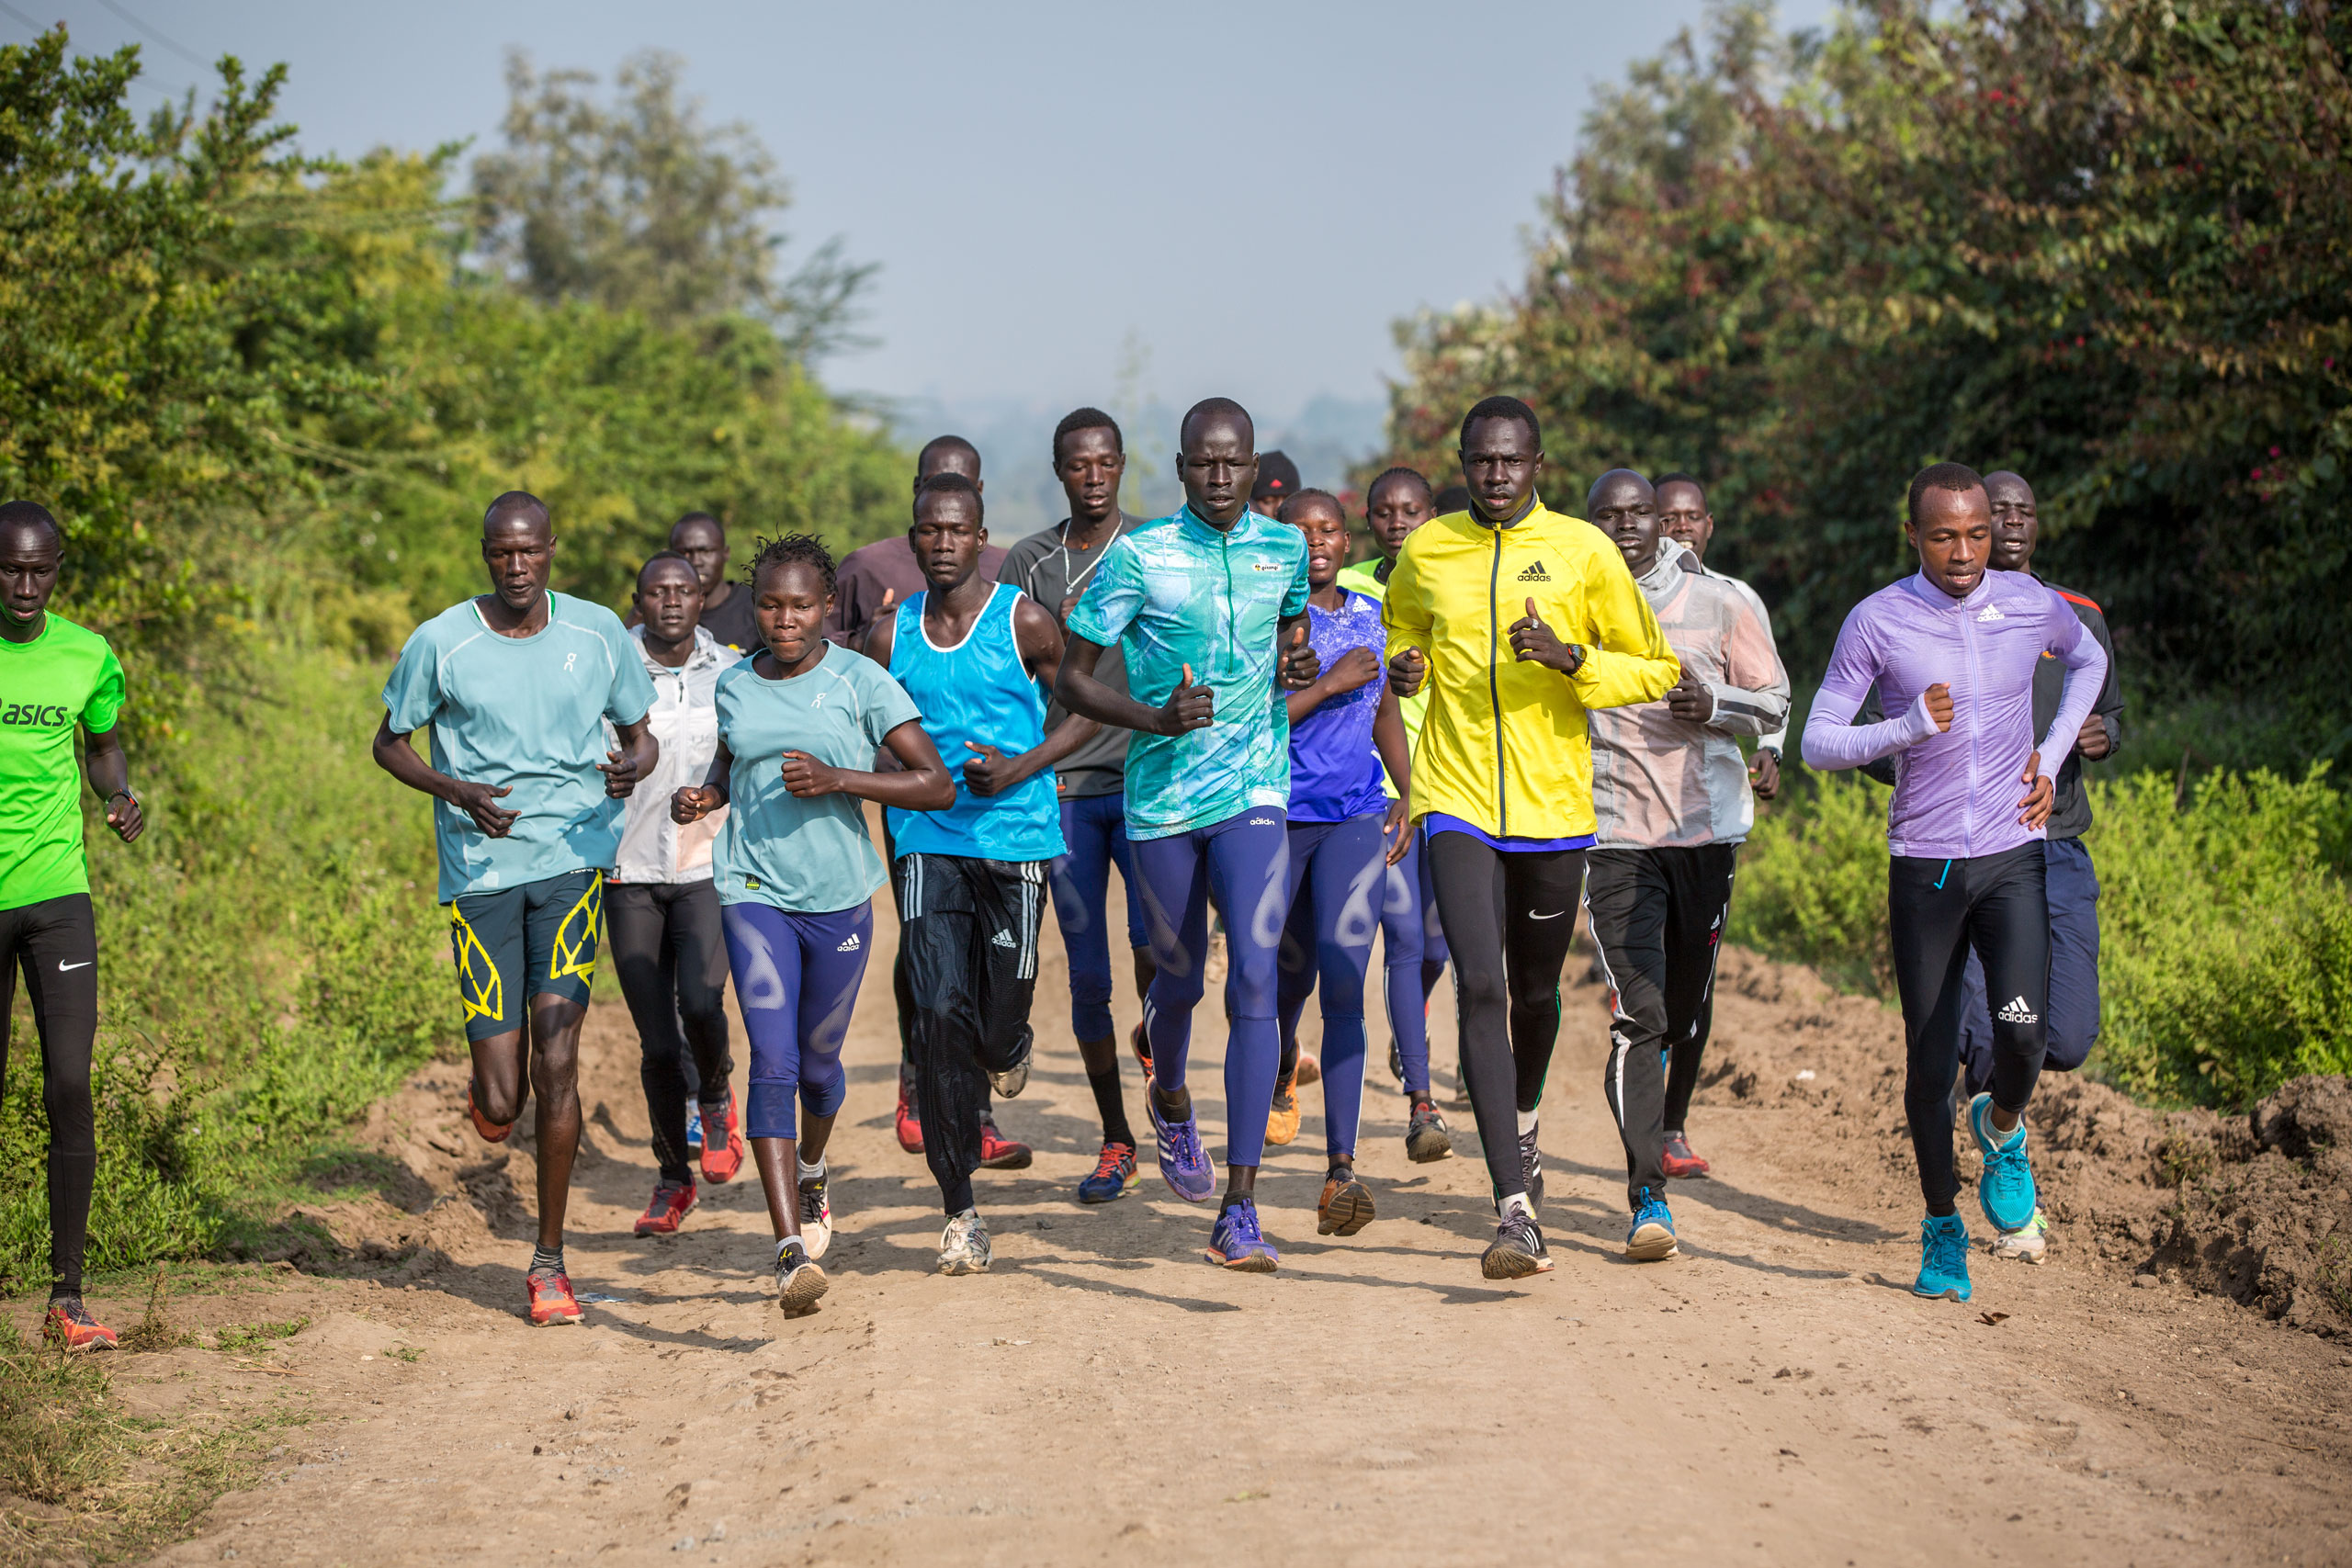 At Loroupe's training center in Kenya, refugee runners worked hard to earn one of 10 spots on the squad bound for Brazil